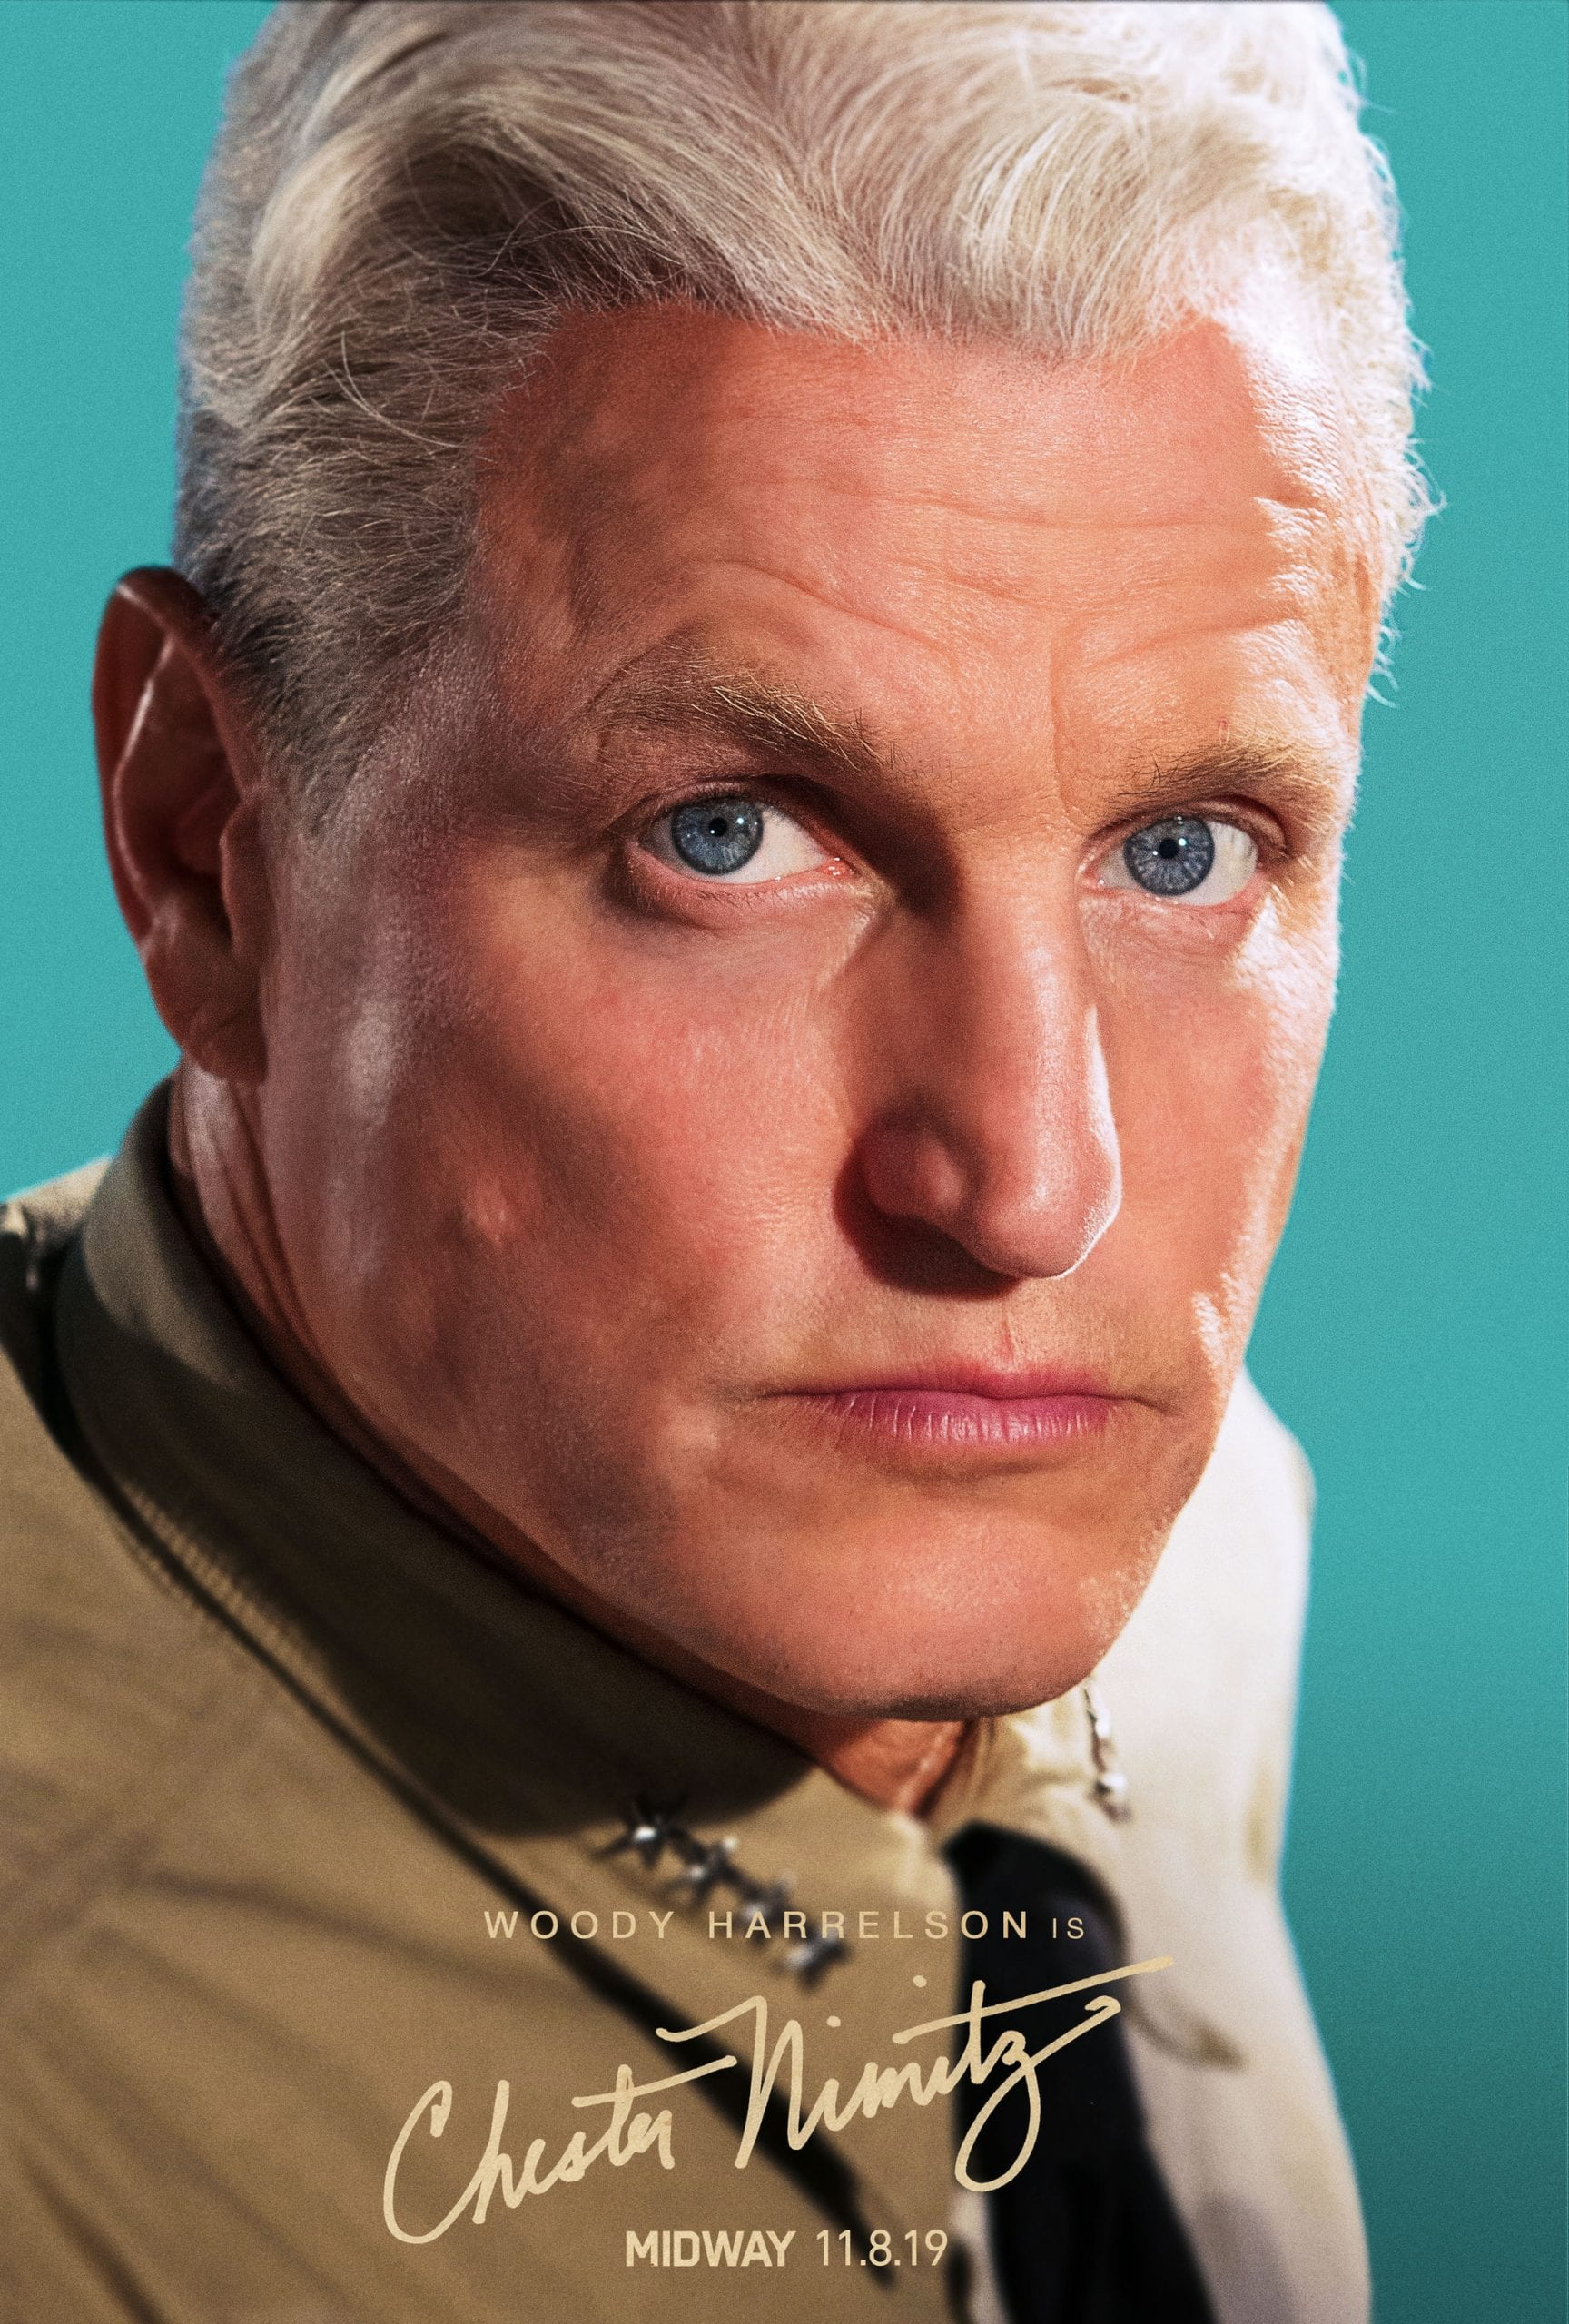 Midway Character Posters Woody Harrelson as Admiral Chester W. Nimitz